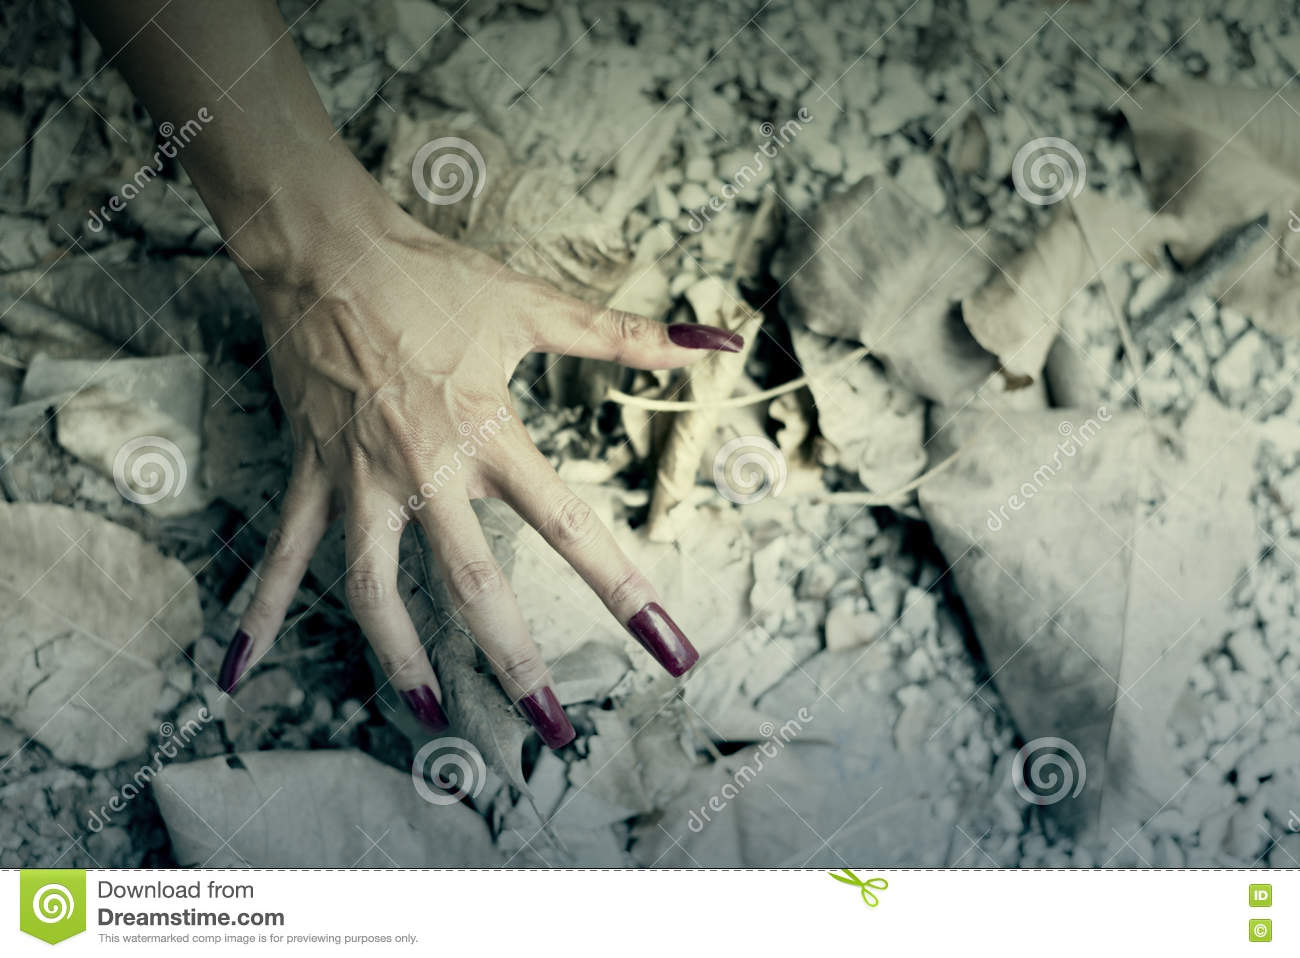 Woman hand step on Floor with Dry leaf.